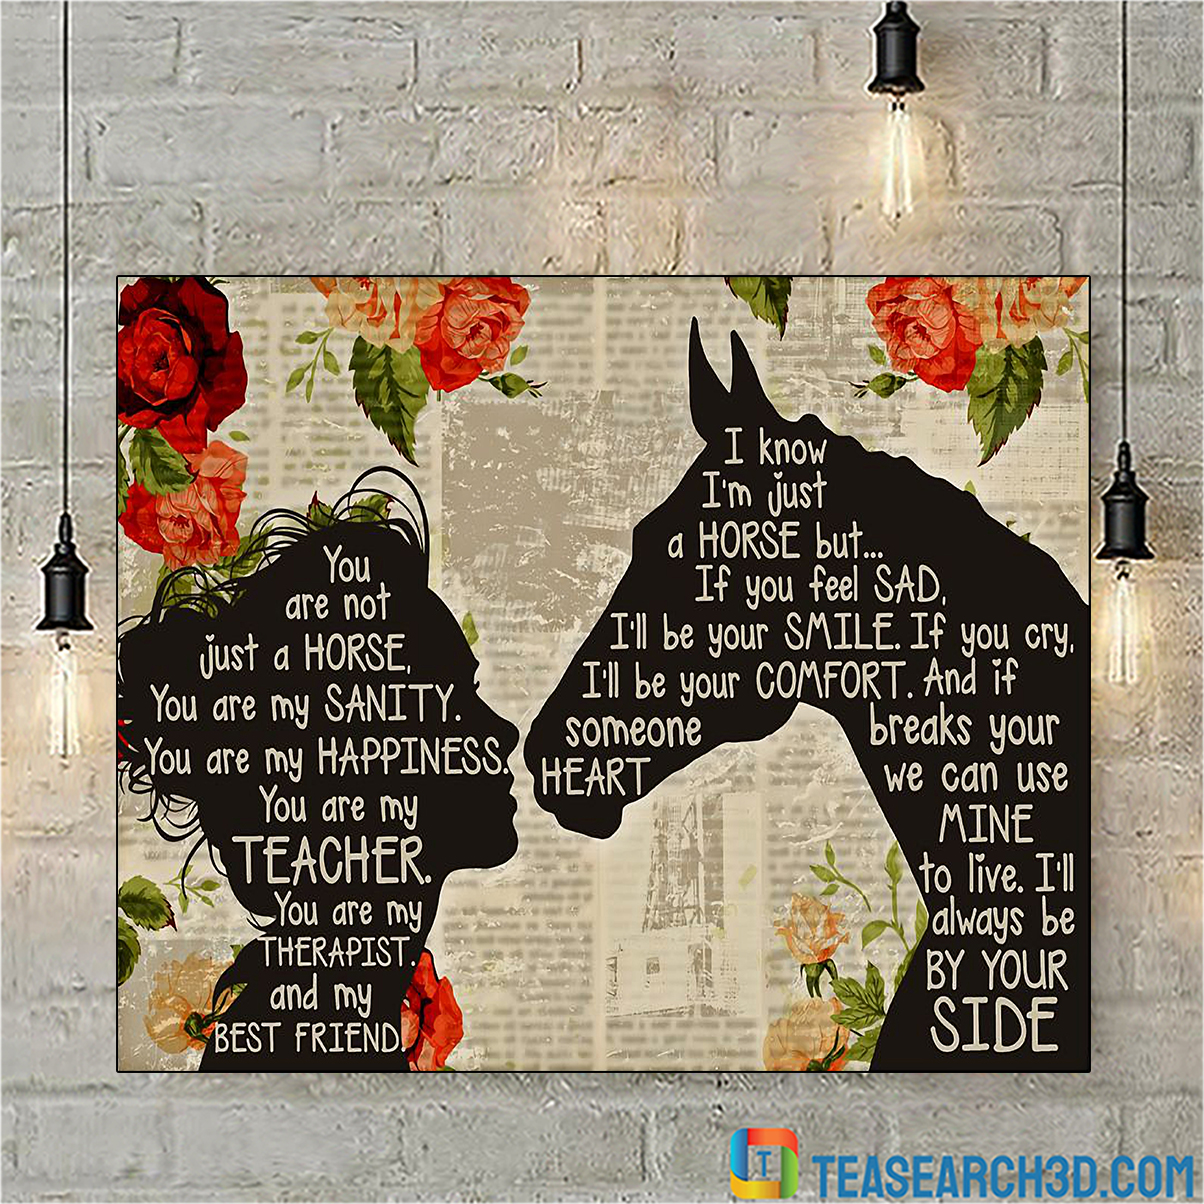 Girl and horse you are not just a horse poster